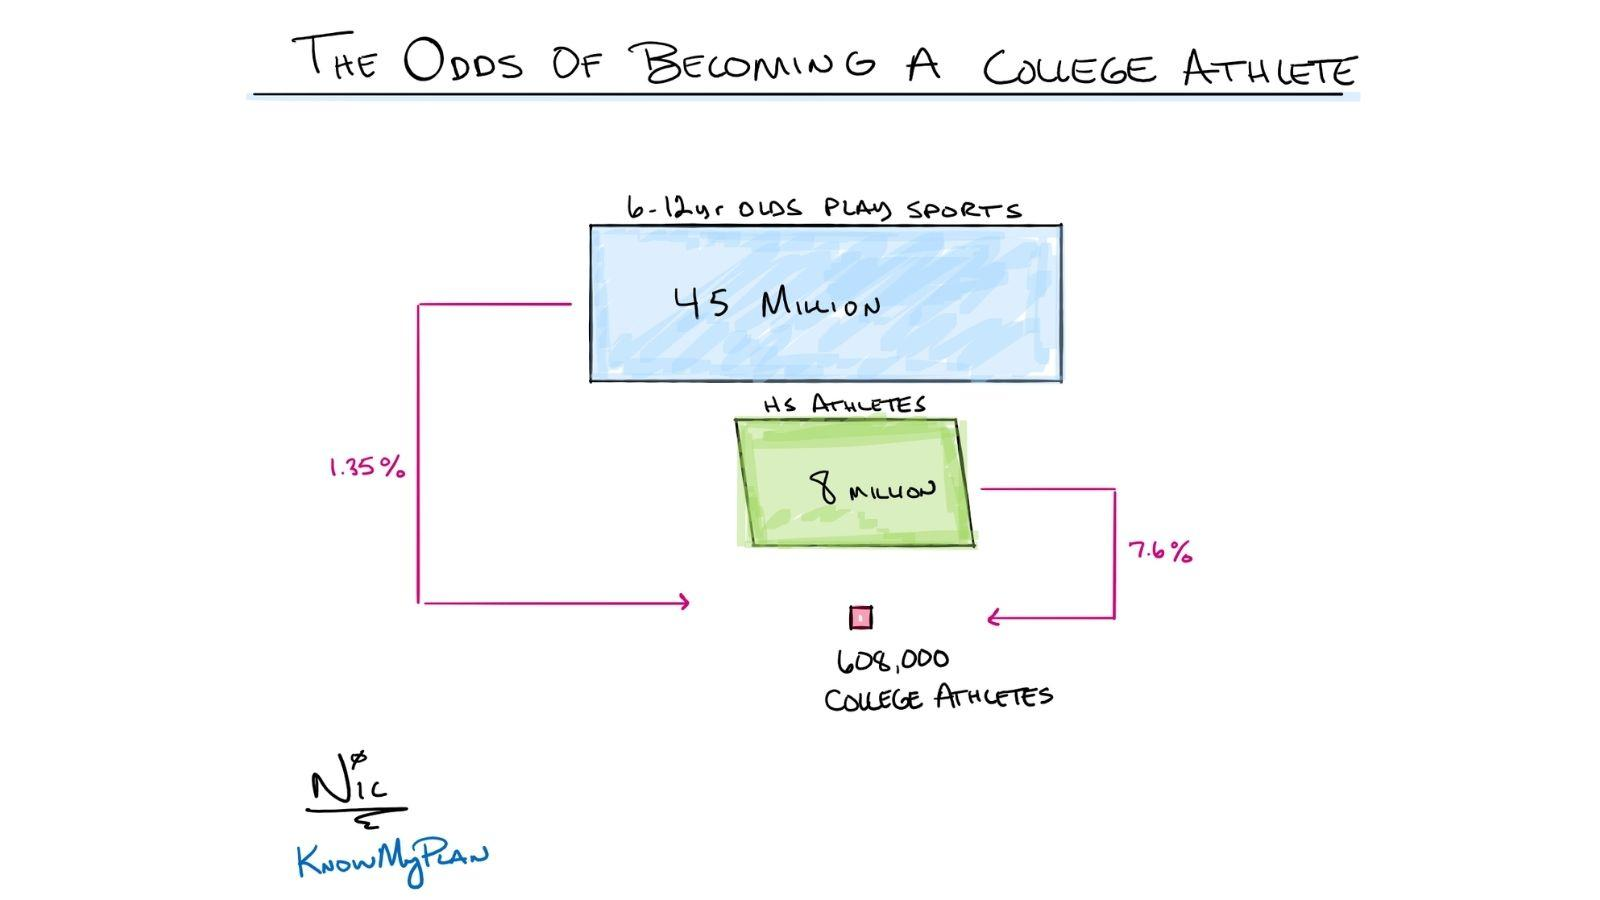 The Odds of Becoming a College Athlete  Thumbnail